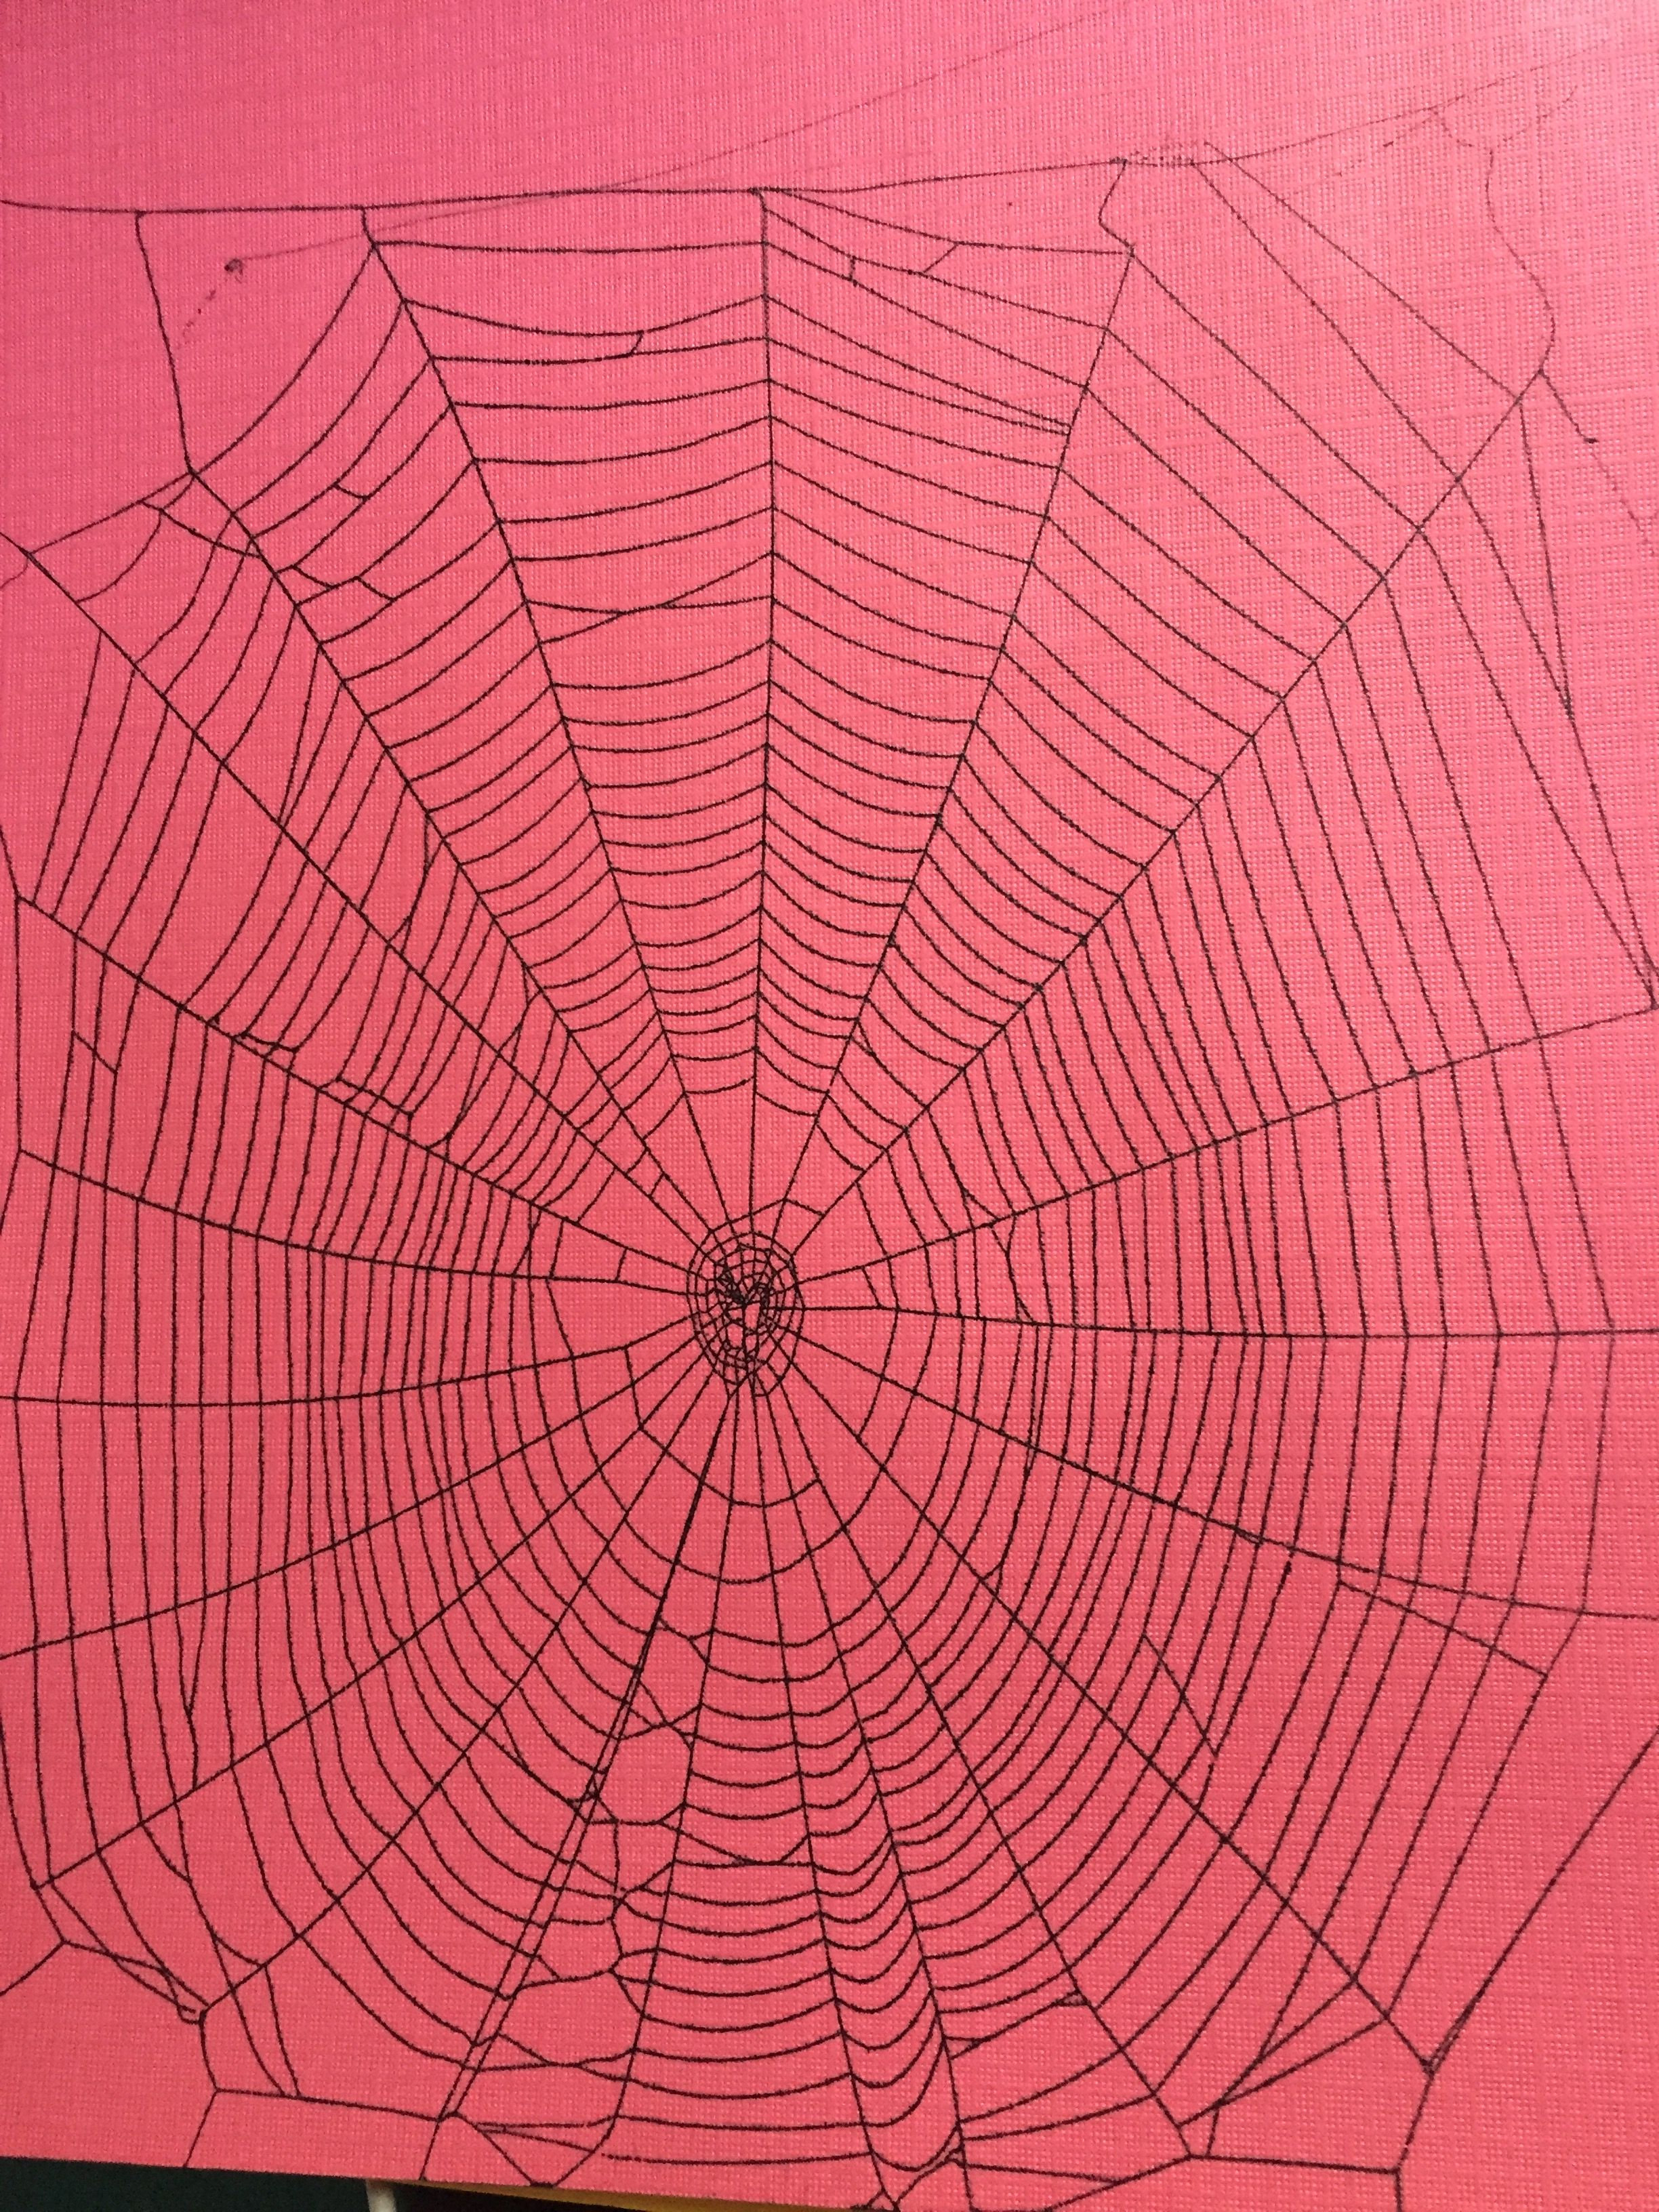 This Is A Real Spider Web Preserved On Paper Check Out My Etsy Page